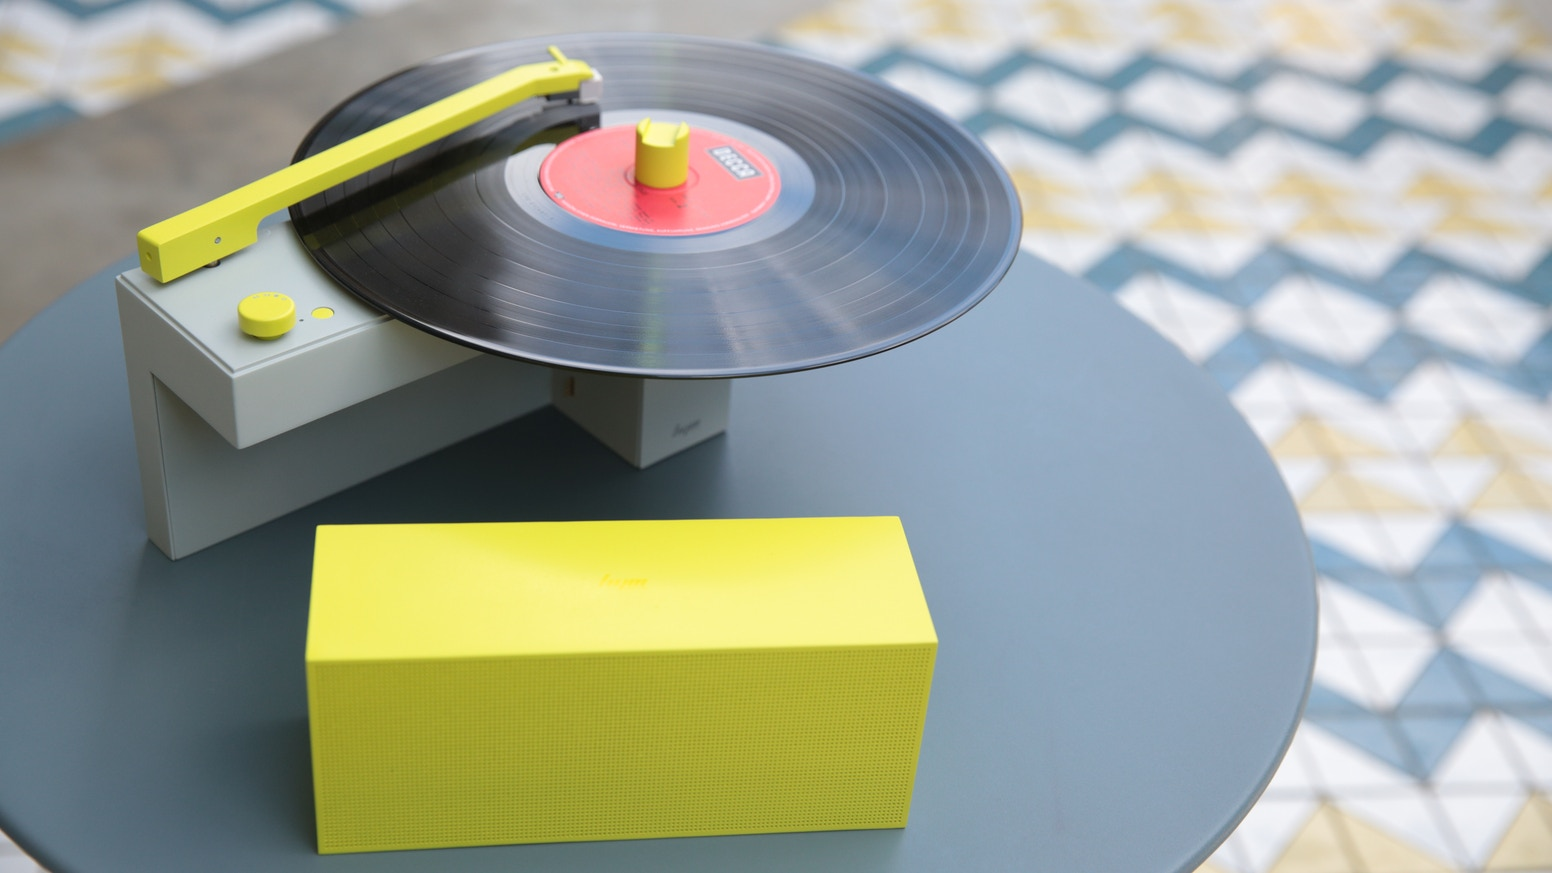 DUO: Turntable with a Detachable Bluetooth Speaker by HYM Seed Audio